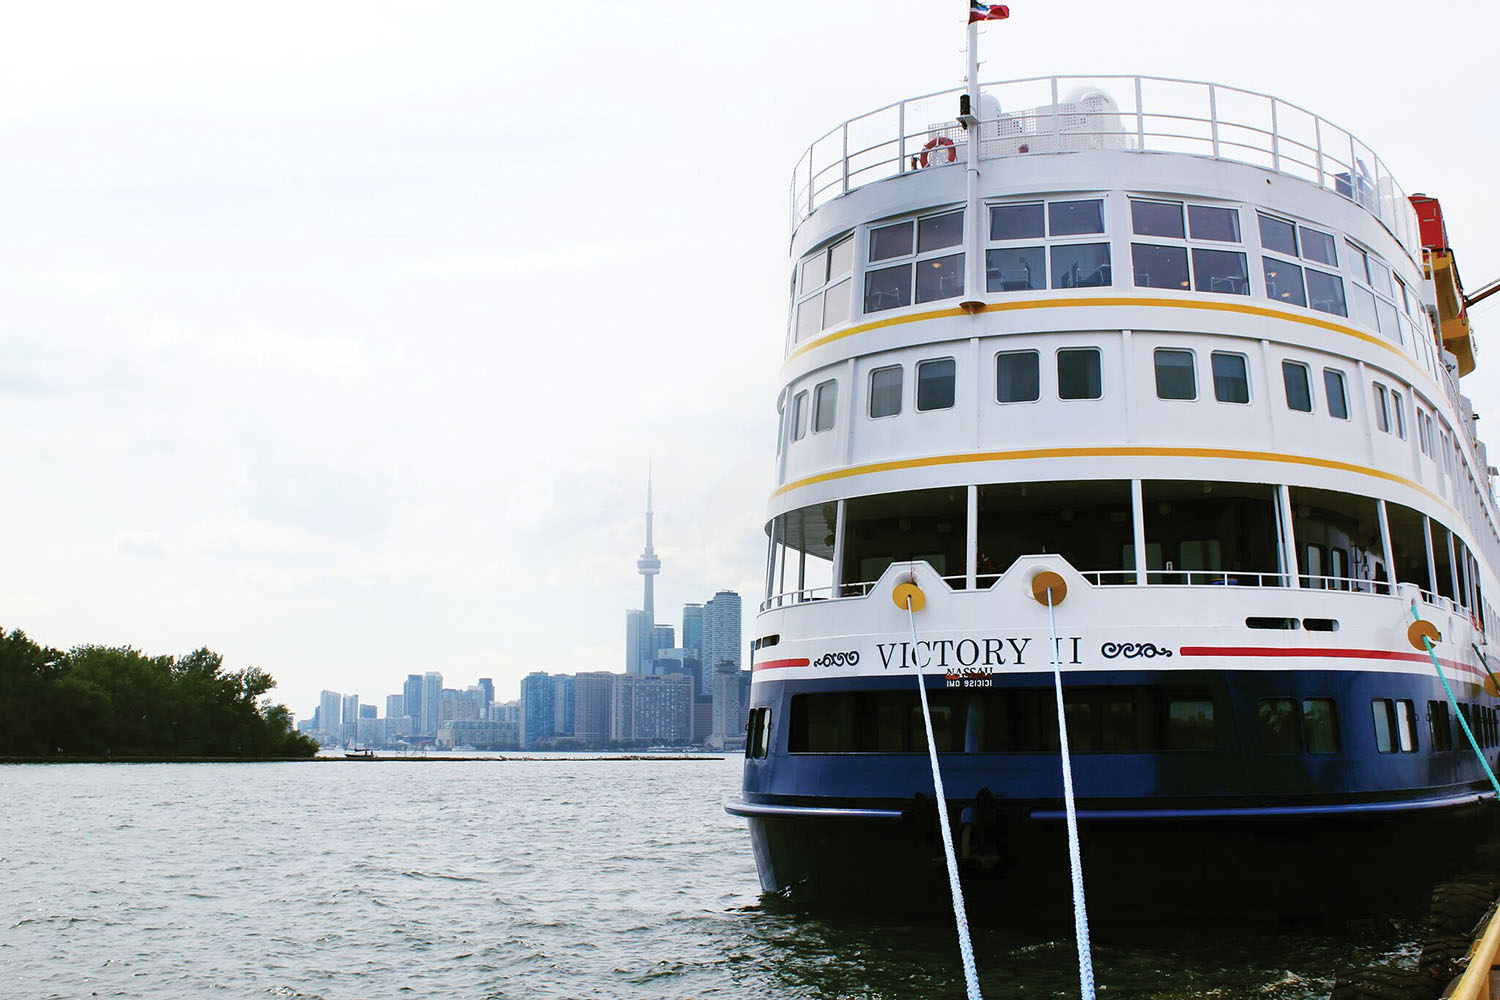 The 202-passenger Victory I and Victory II (shown here) will cruise on the Great Lakes.